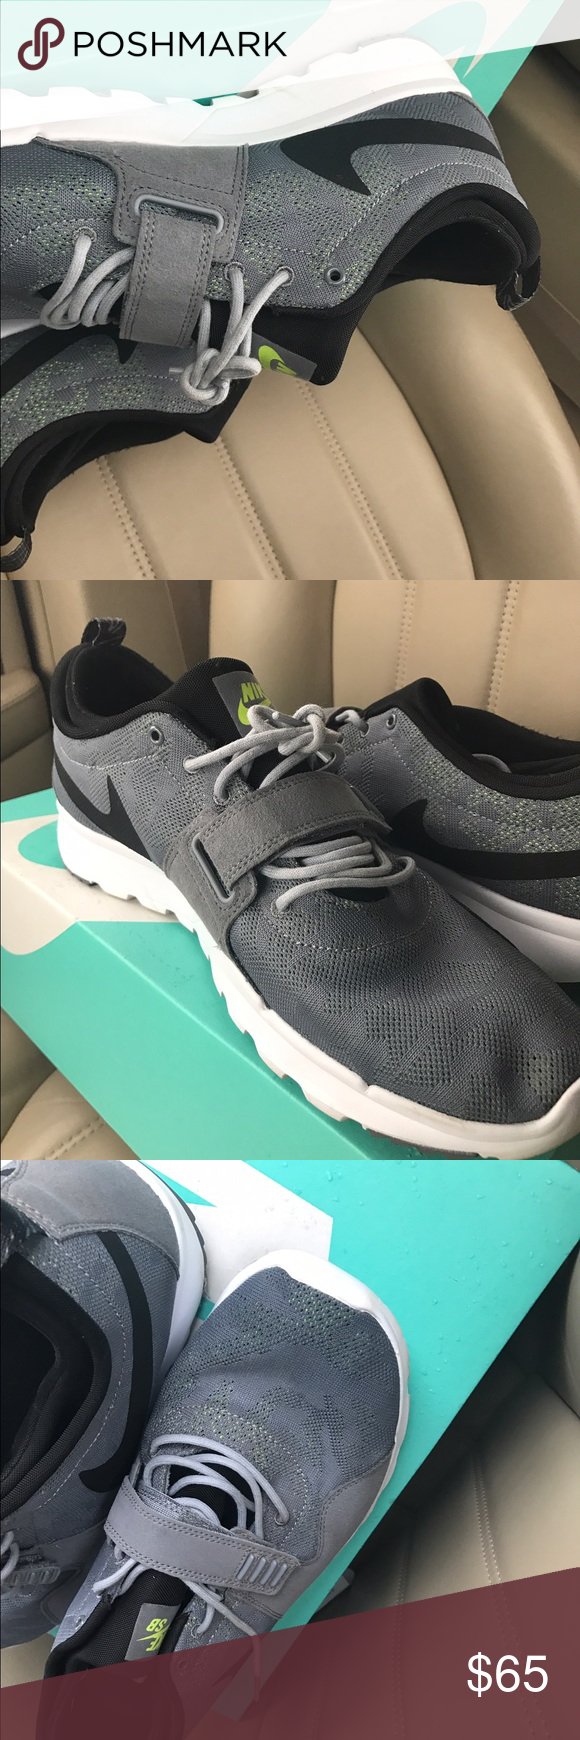 Shop Men's Nike Gray Black size 13 Shoes at a discounted price at Poshmark.  Description: New with tag.